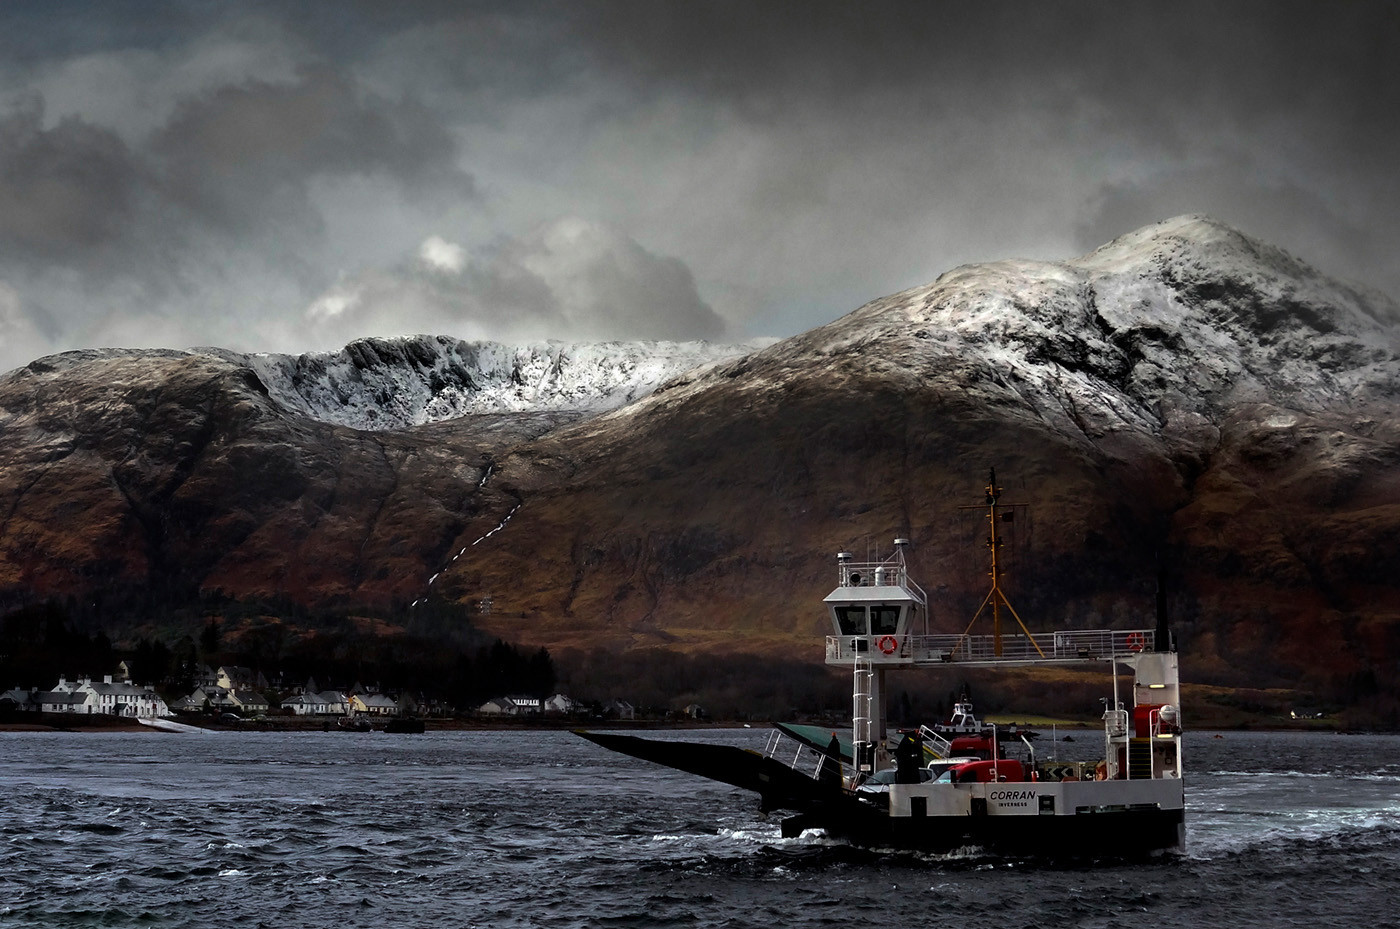 GROUP 1 16 CORRAN FERRY CROSSING by Peter Tulloch